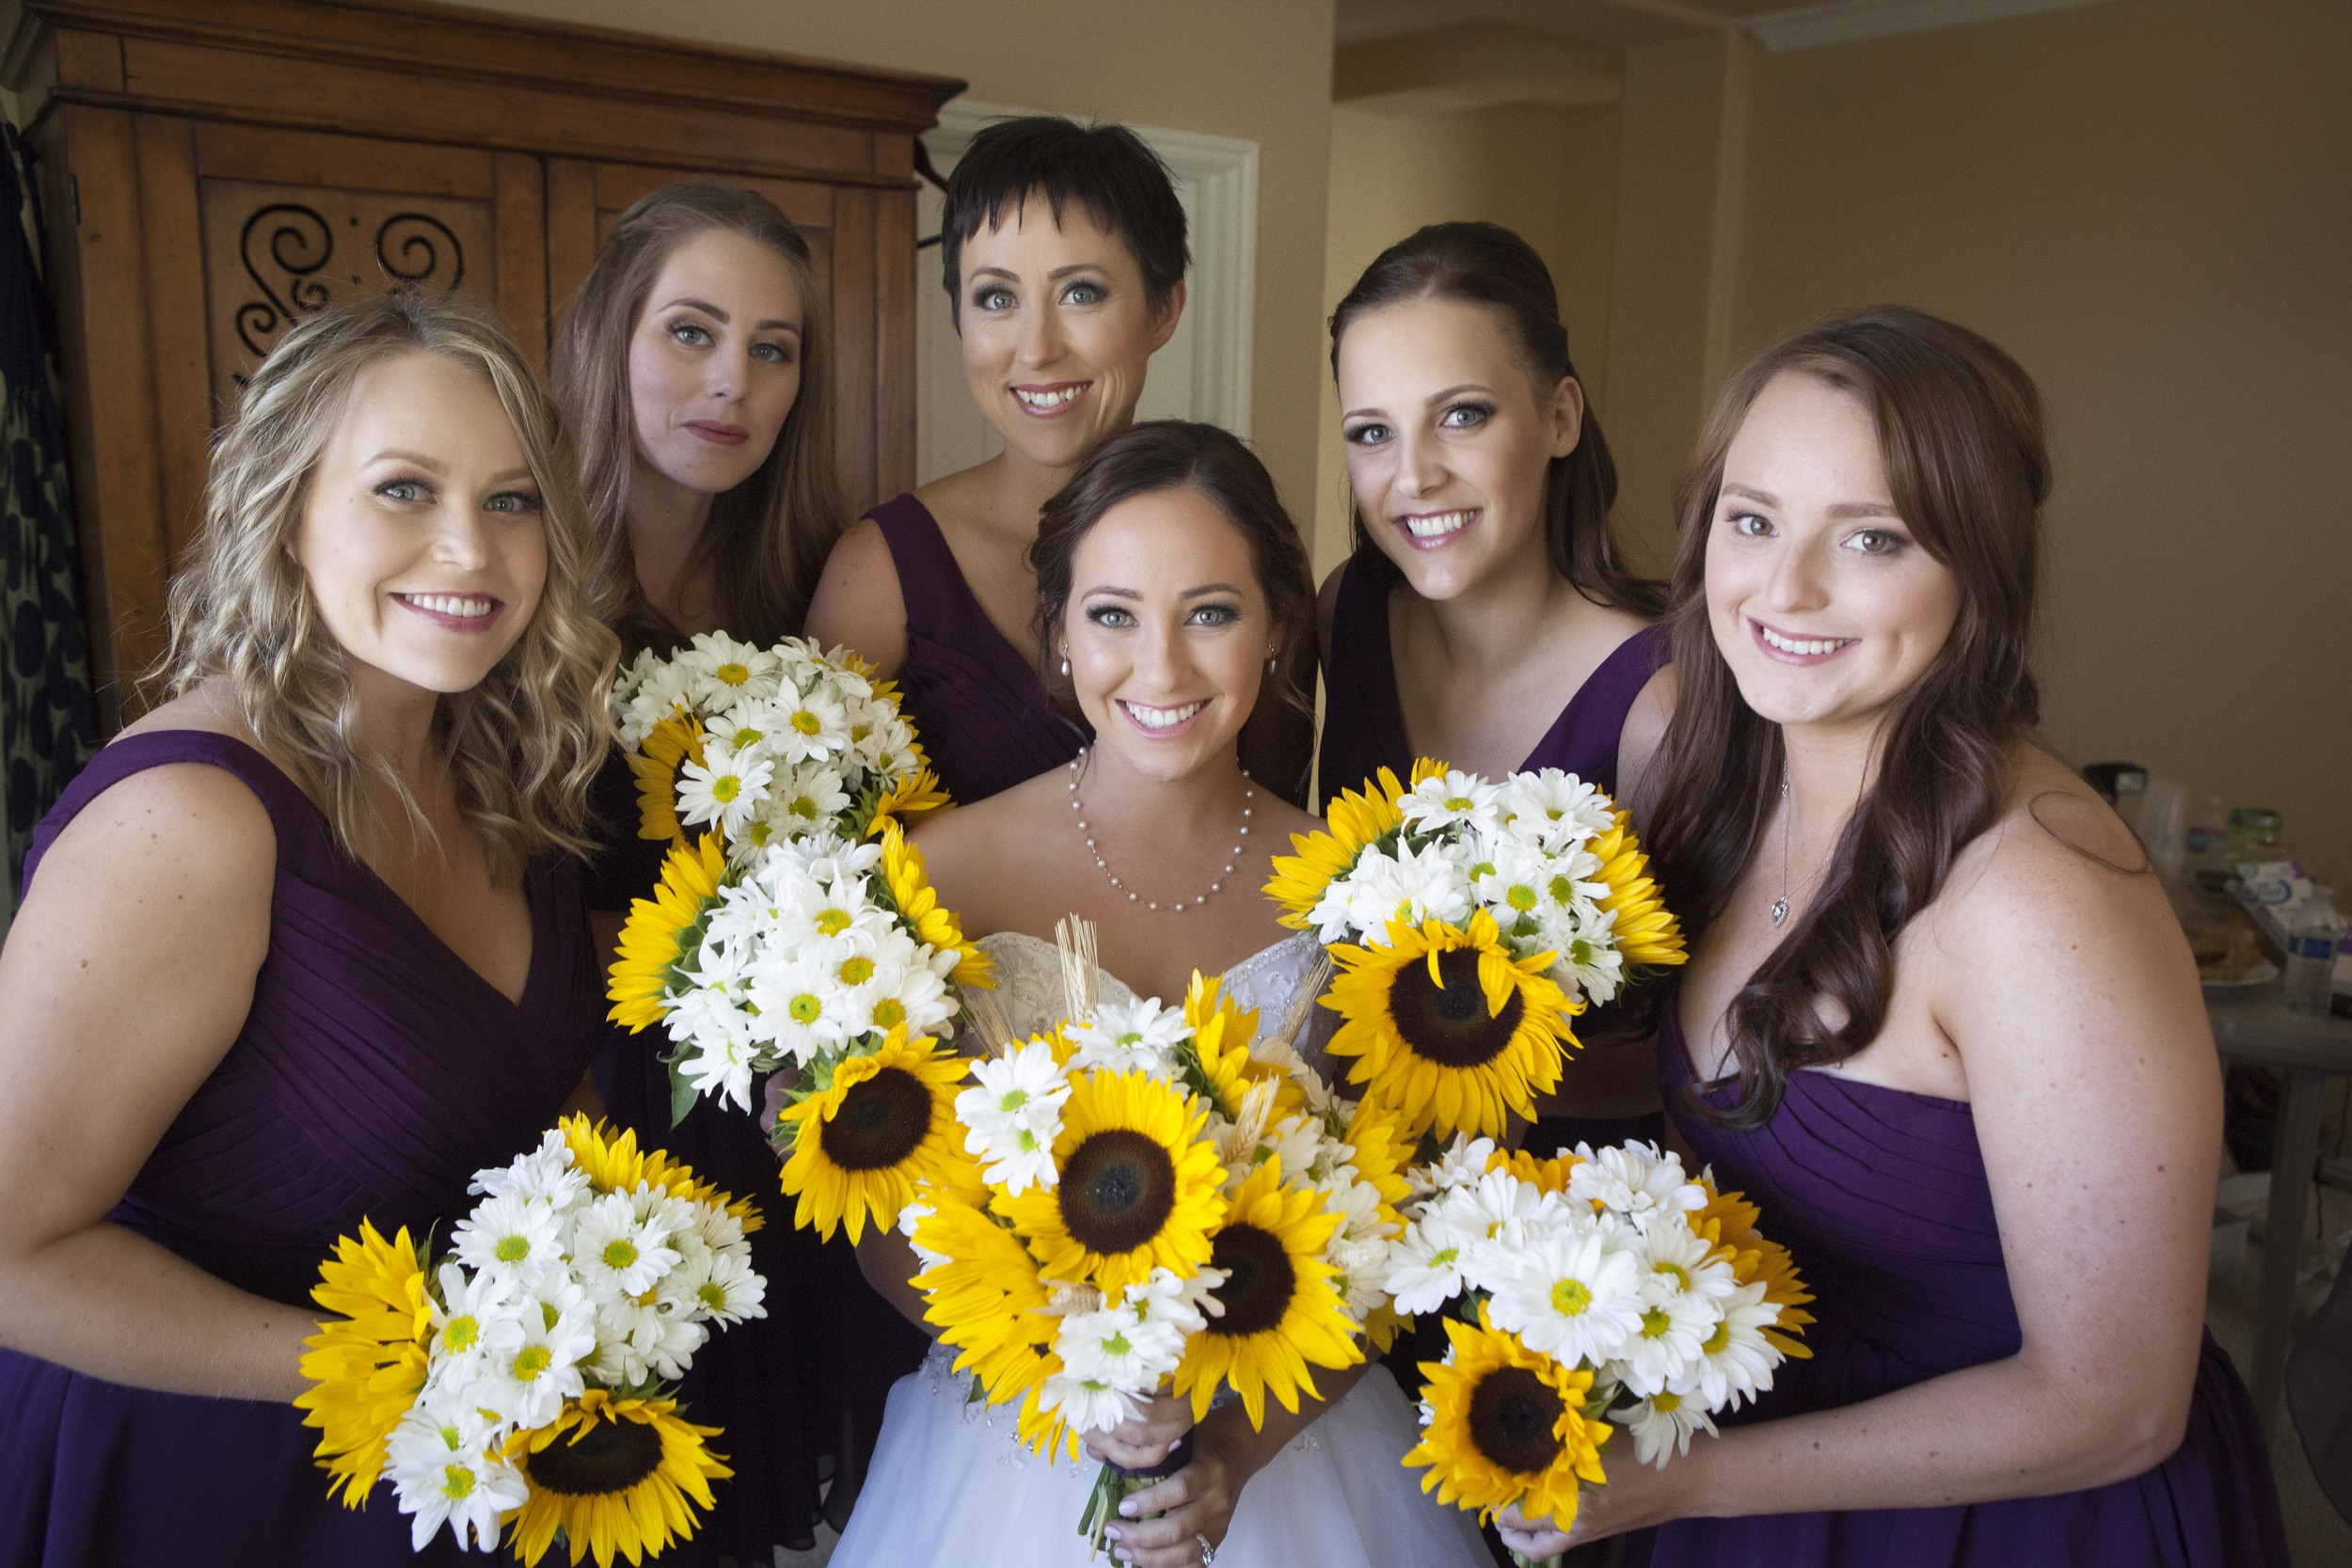 We always enjoy being a part of the joy the bridesmaids share with the bride.